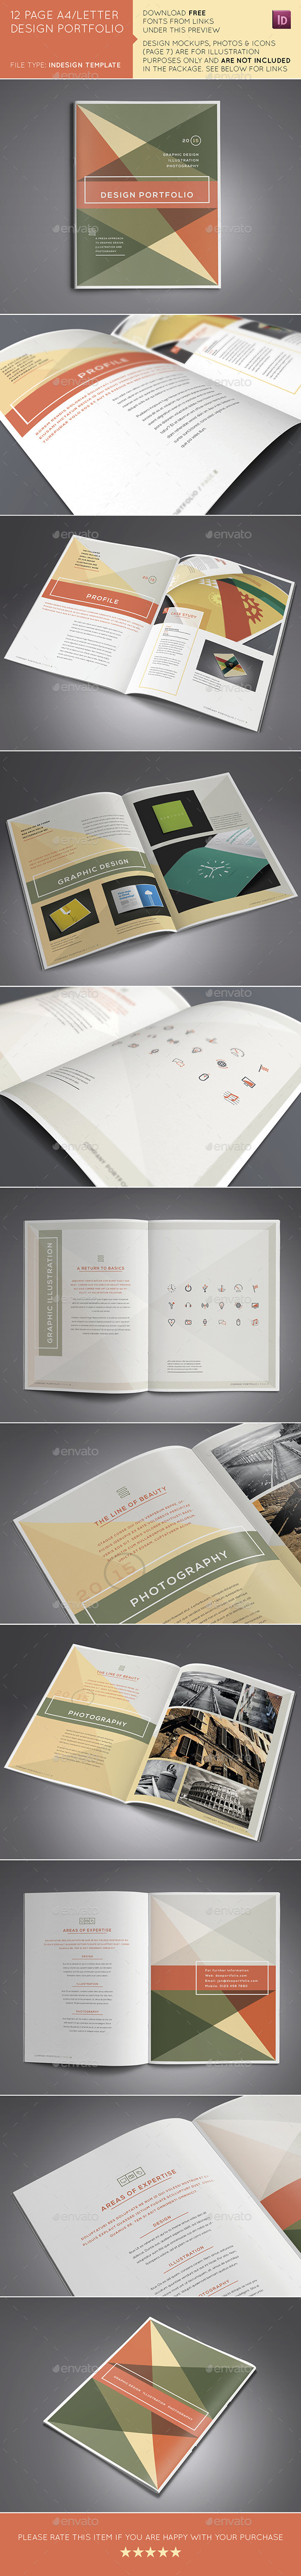 GraphicRiver 12 Page A4 US Design Portfolio Brochure 10511824